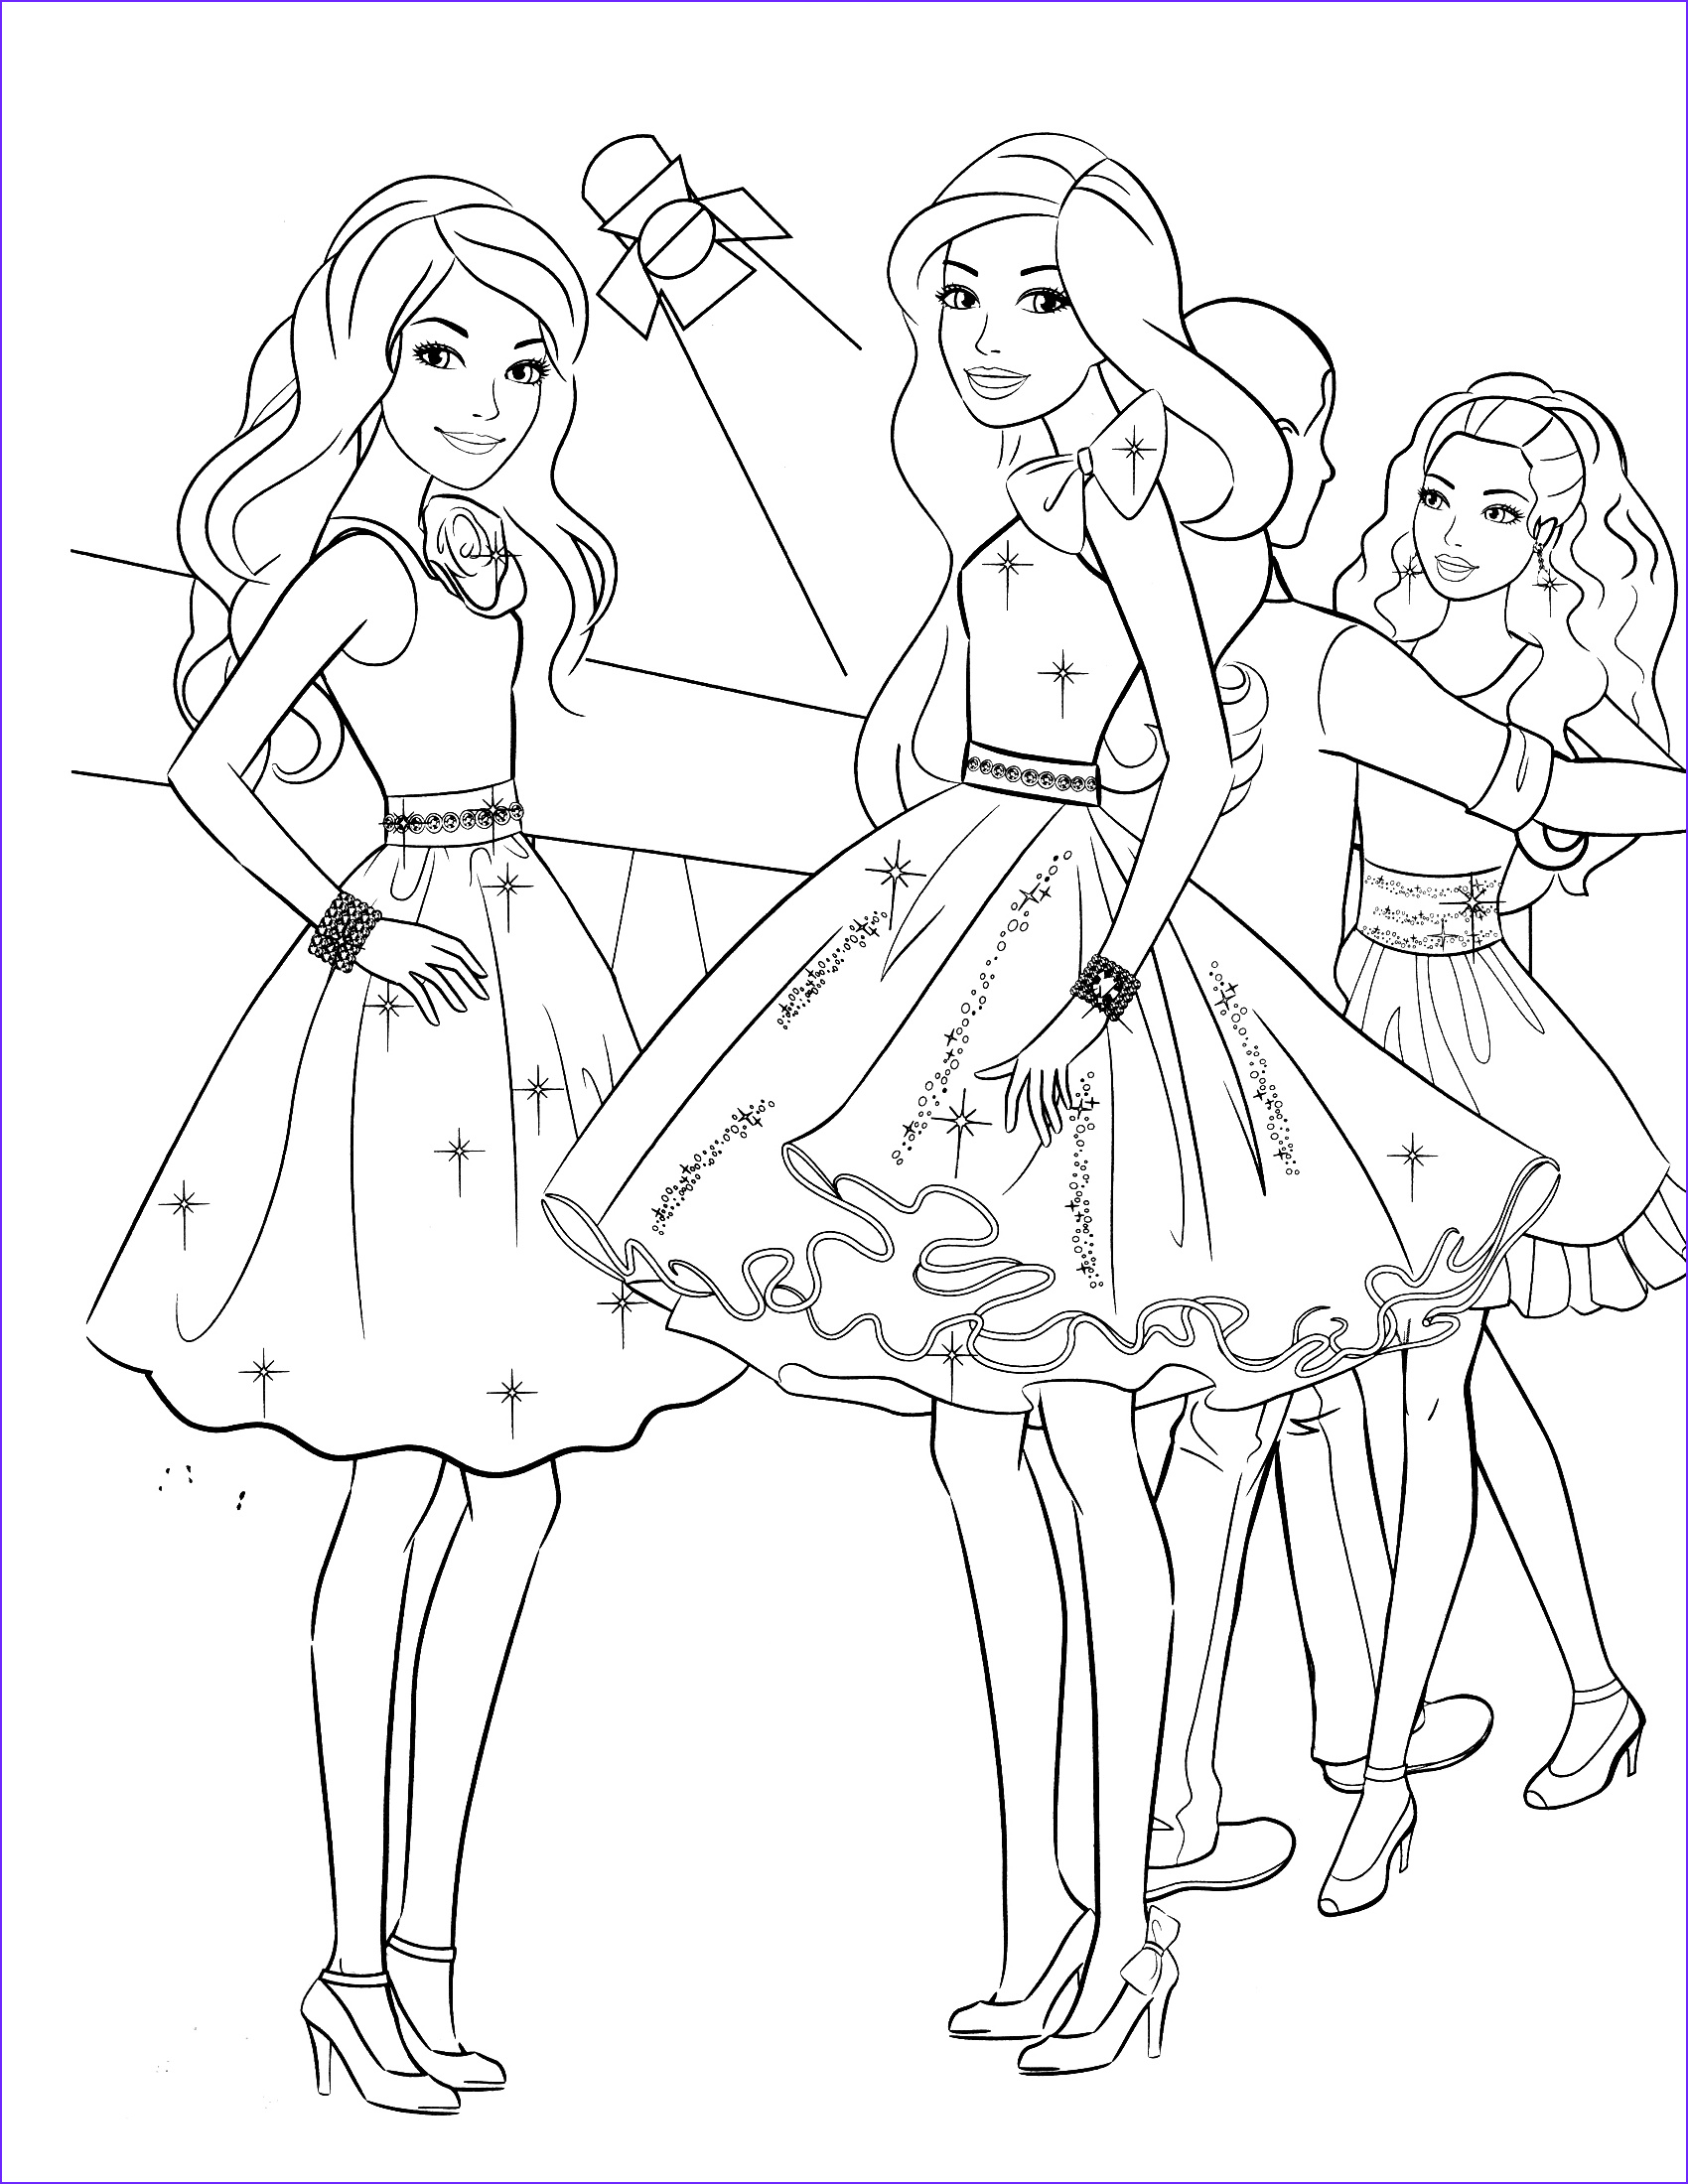 Barby Coloring Beautiful Gallery 85 Barbie Coloring Pages For Girls Barbie Princess